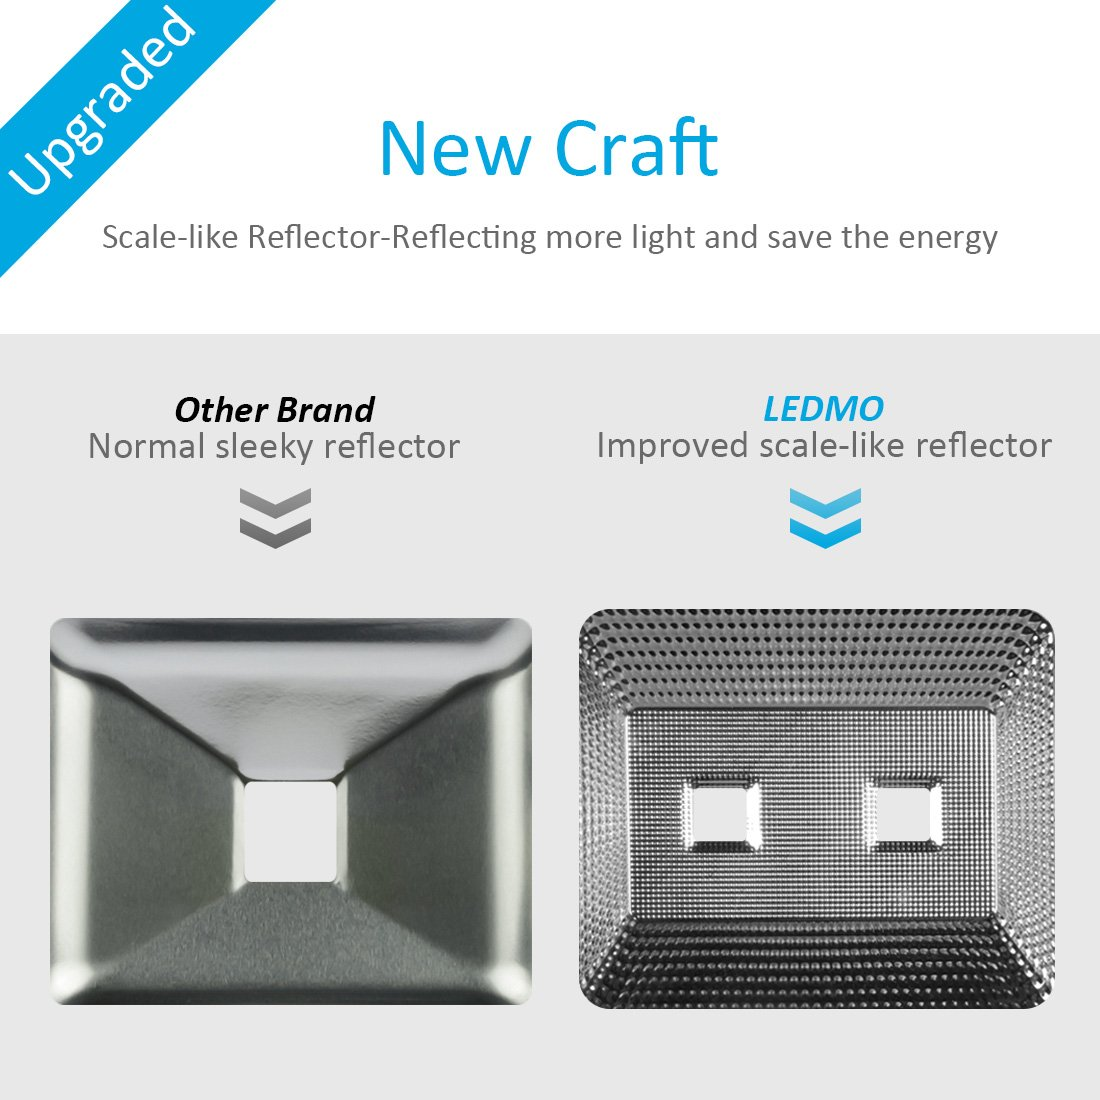 100W LED Flood Lights, NEW VERSION 8000Lm Super Bright White 6000K, 500W Equivalent, IP65 Waterproof 85-265v, Instant On, UL and DLC Outdoor Floodlight for Garage, Garden